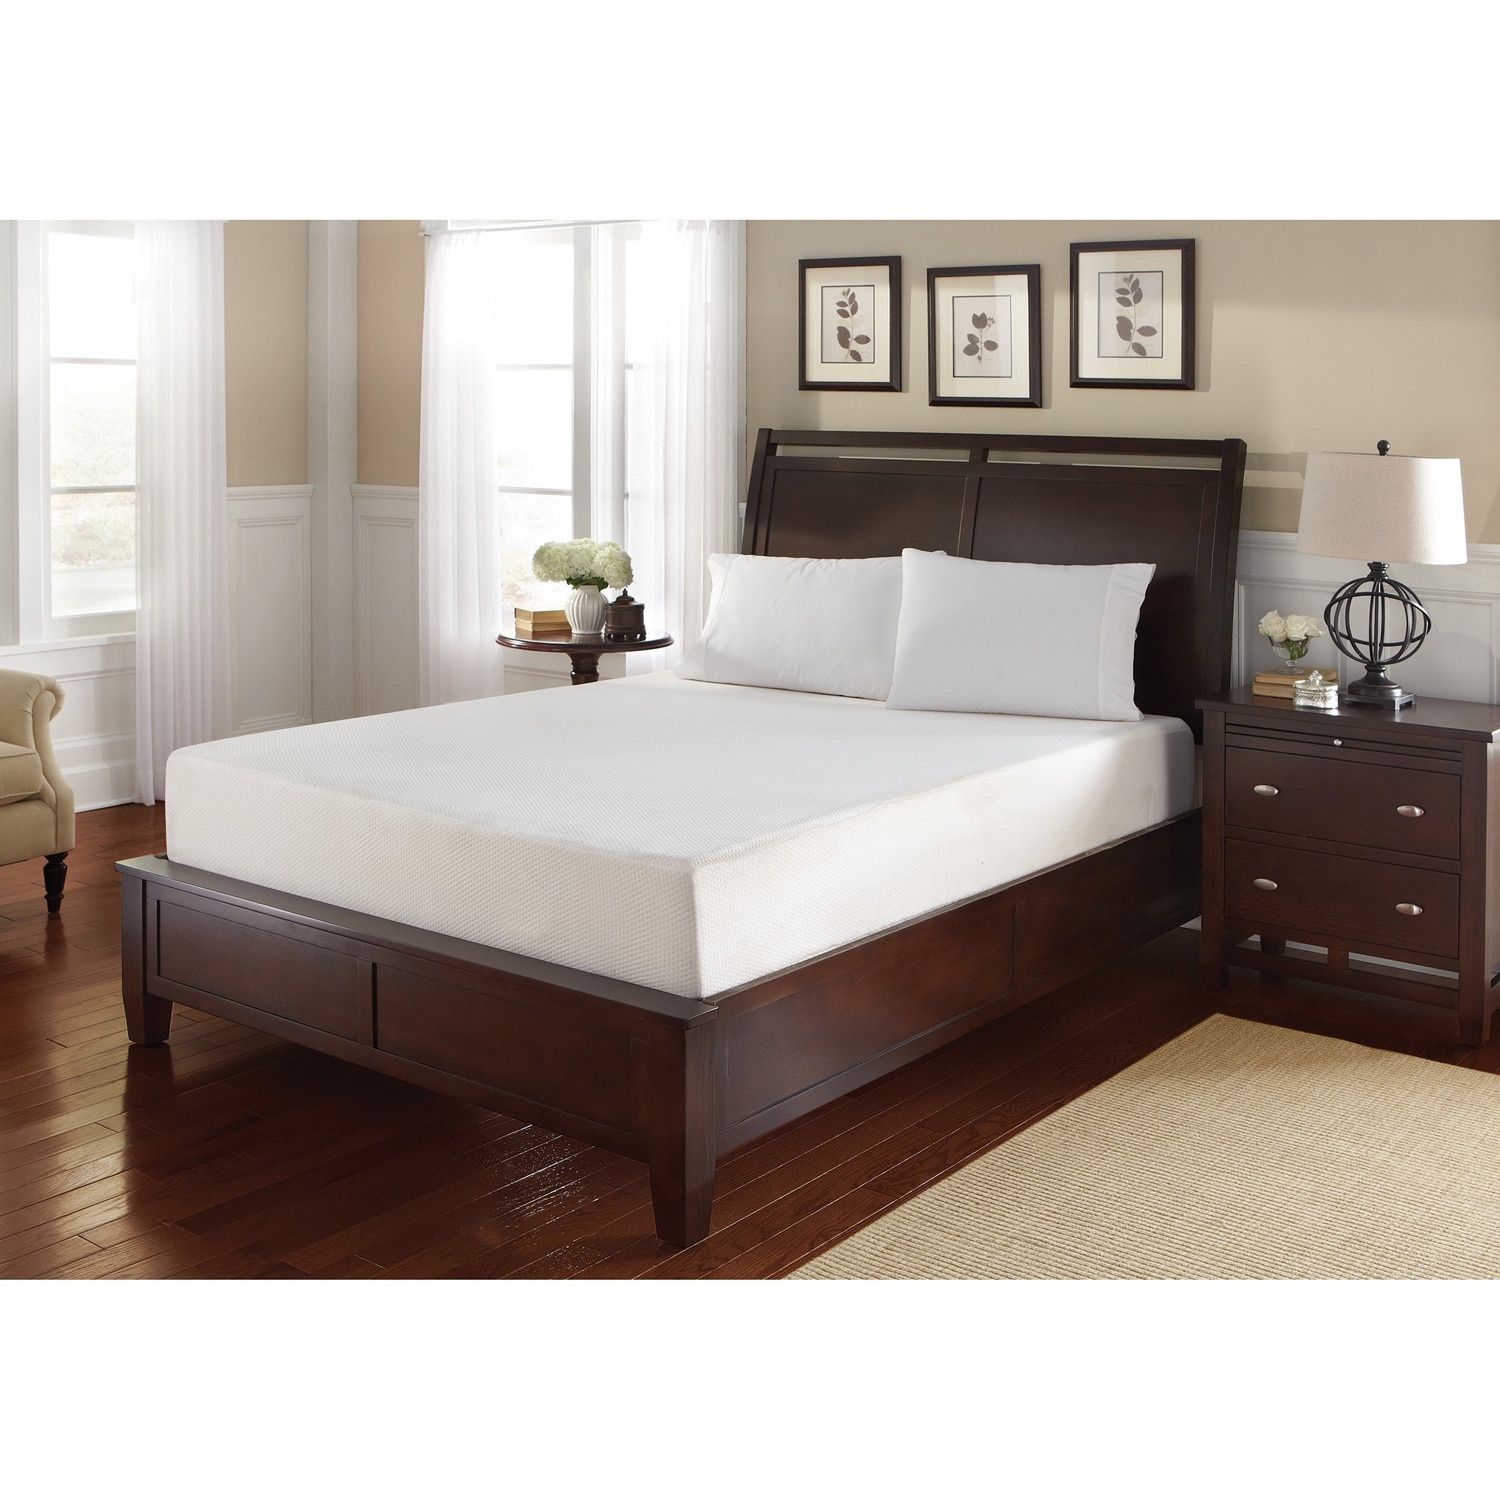 WHITE by Sarah Peyton Home Collection WHITE by Sarah Peyton 12-inch King-size Gel Convection Cooled Memory Foam Mattress